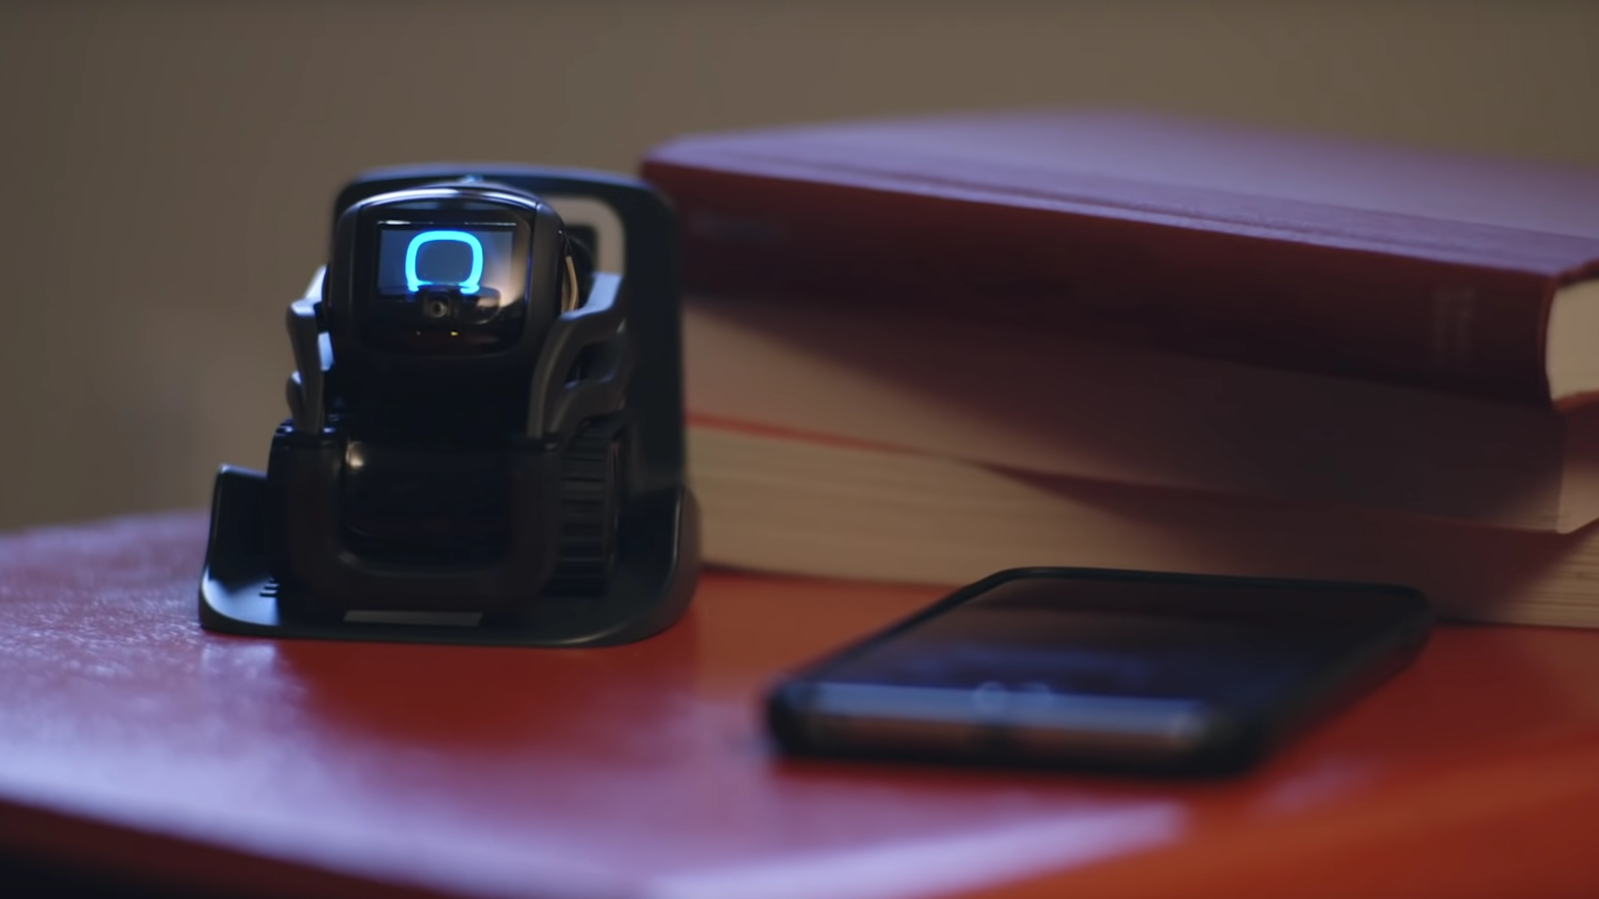 Anki's friendly Vector robot is getting Alexa support